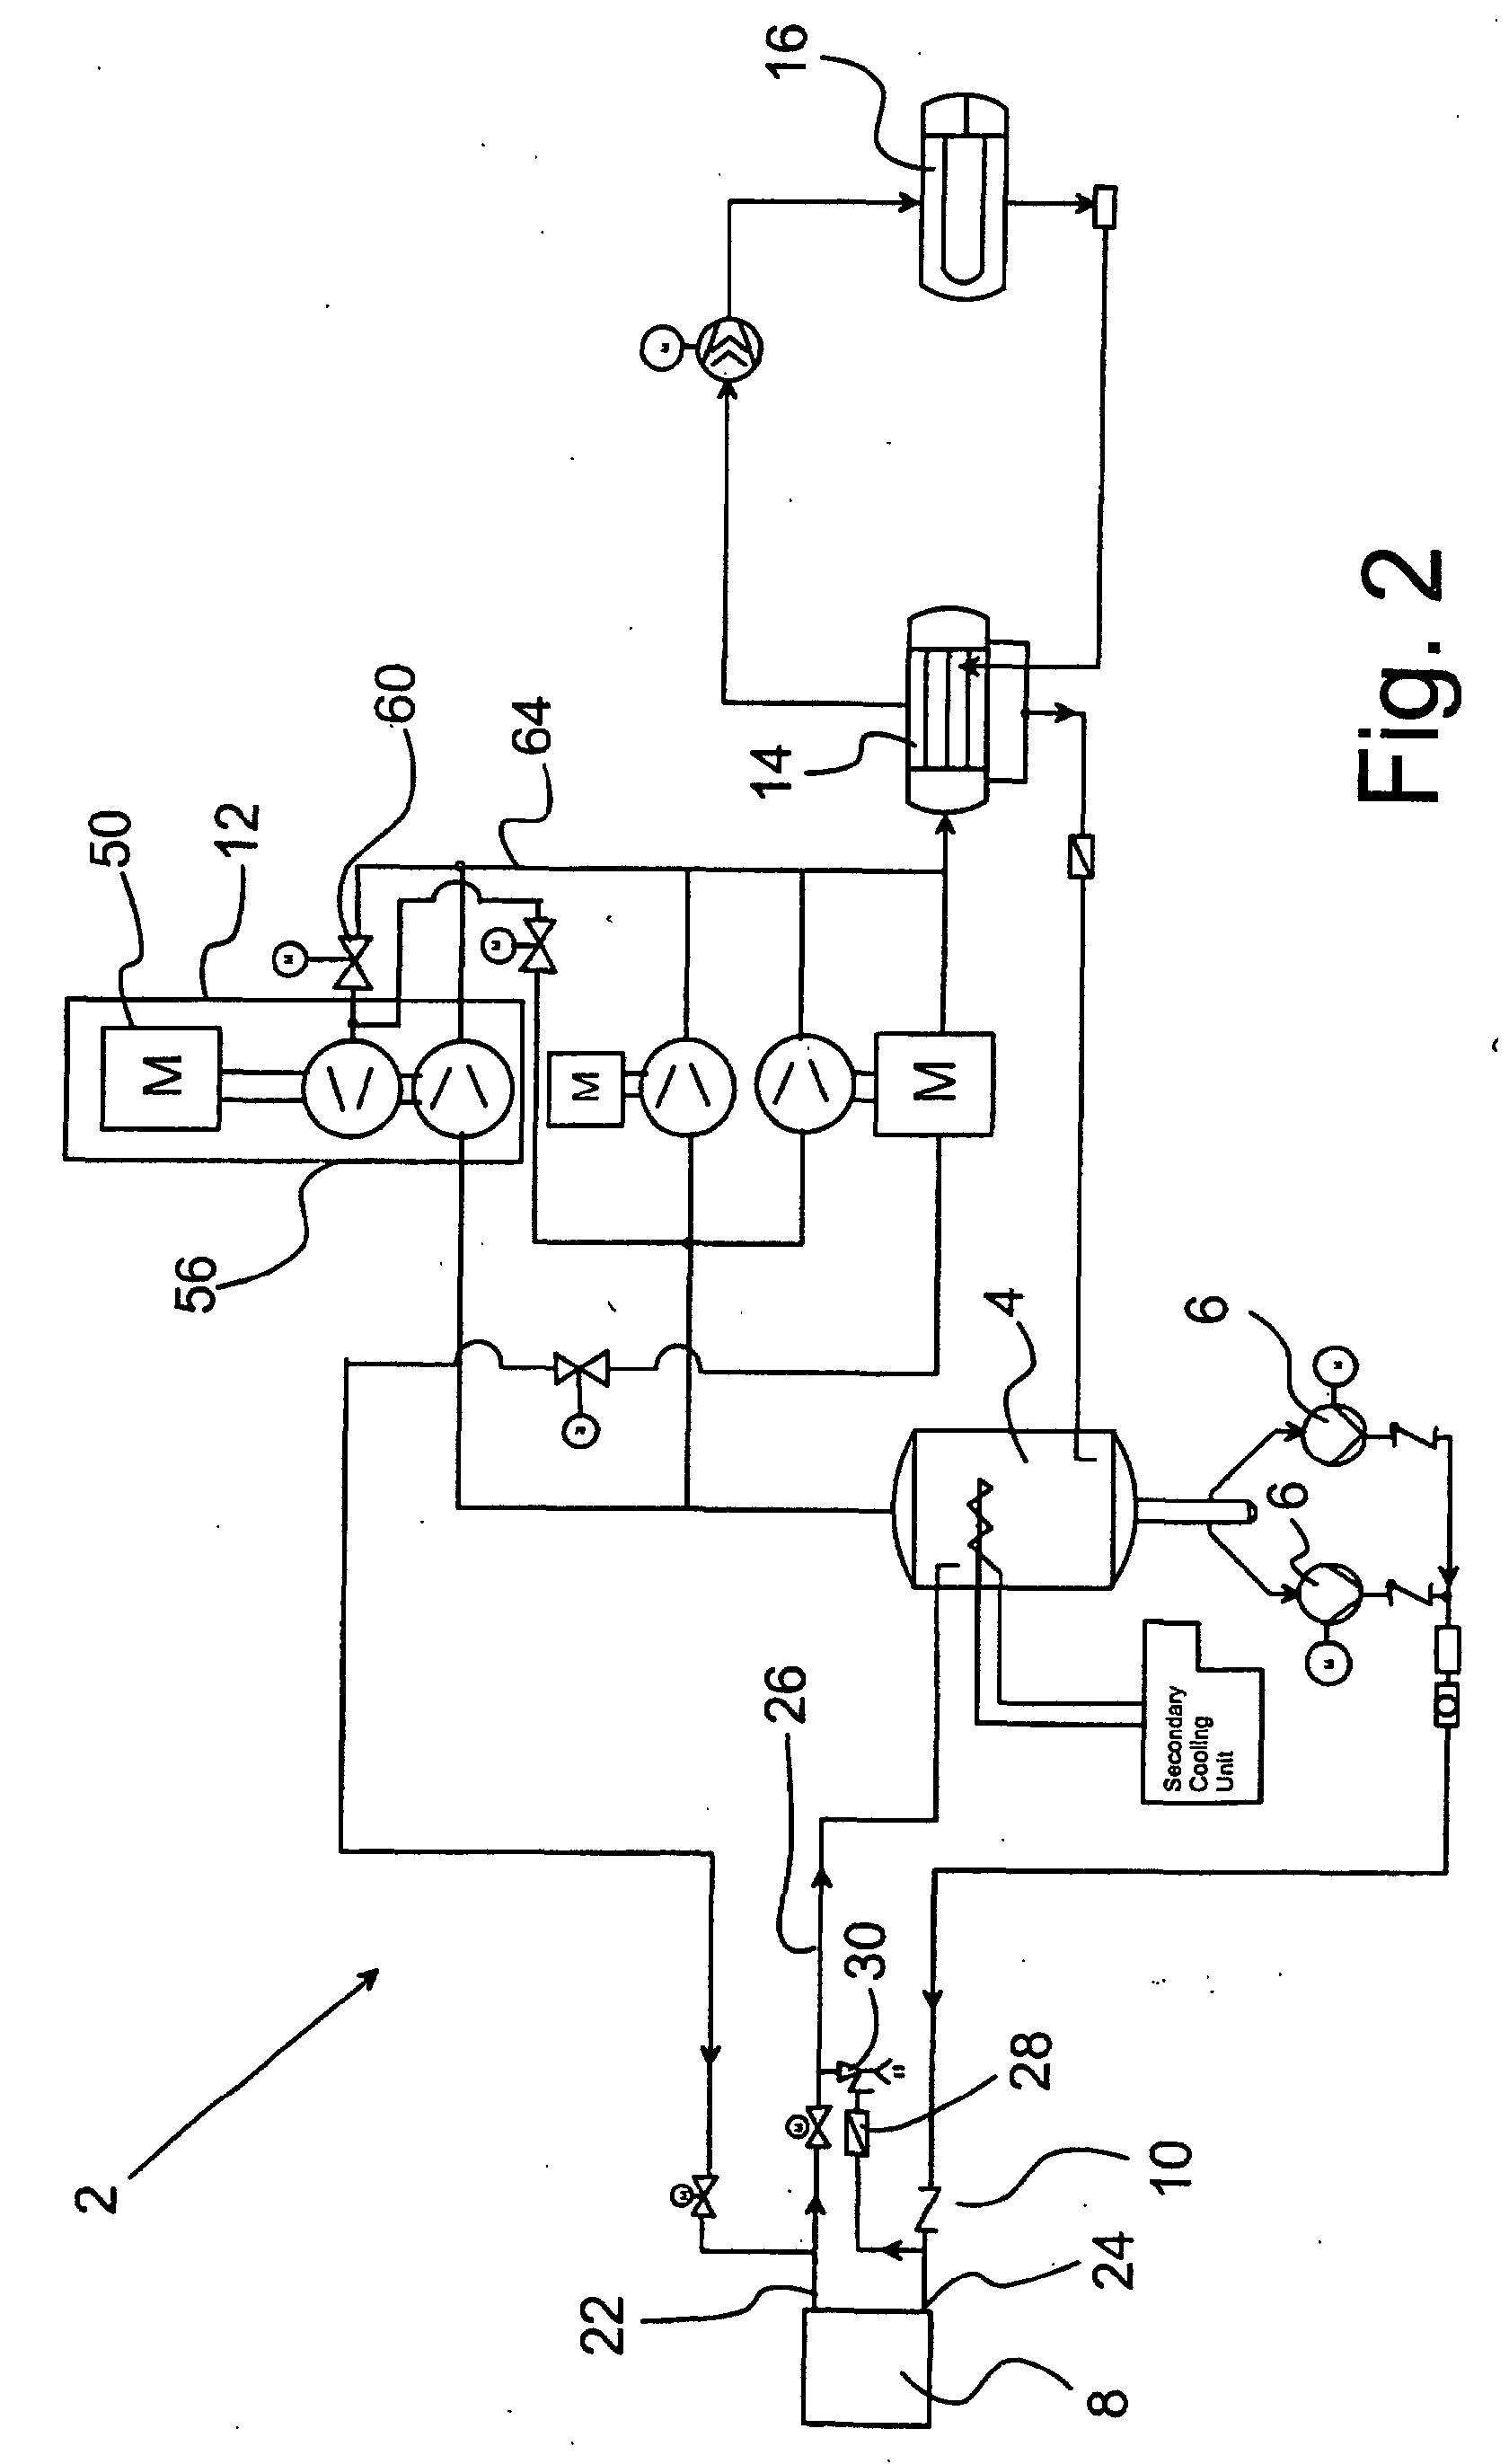 Wiring Schematic For Walk In Freezer On Wiring Download Wirning ...